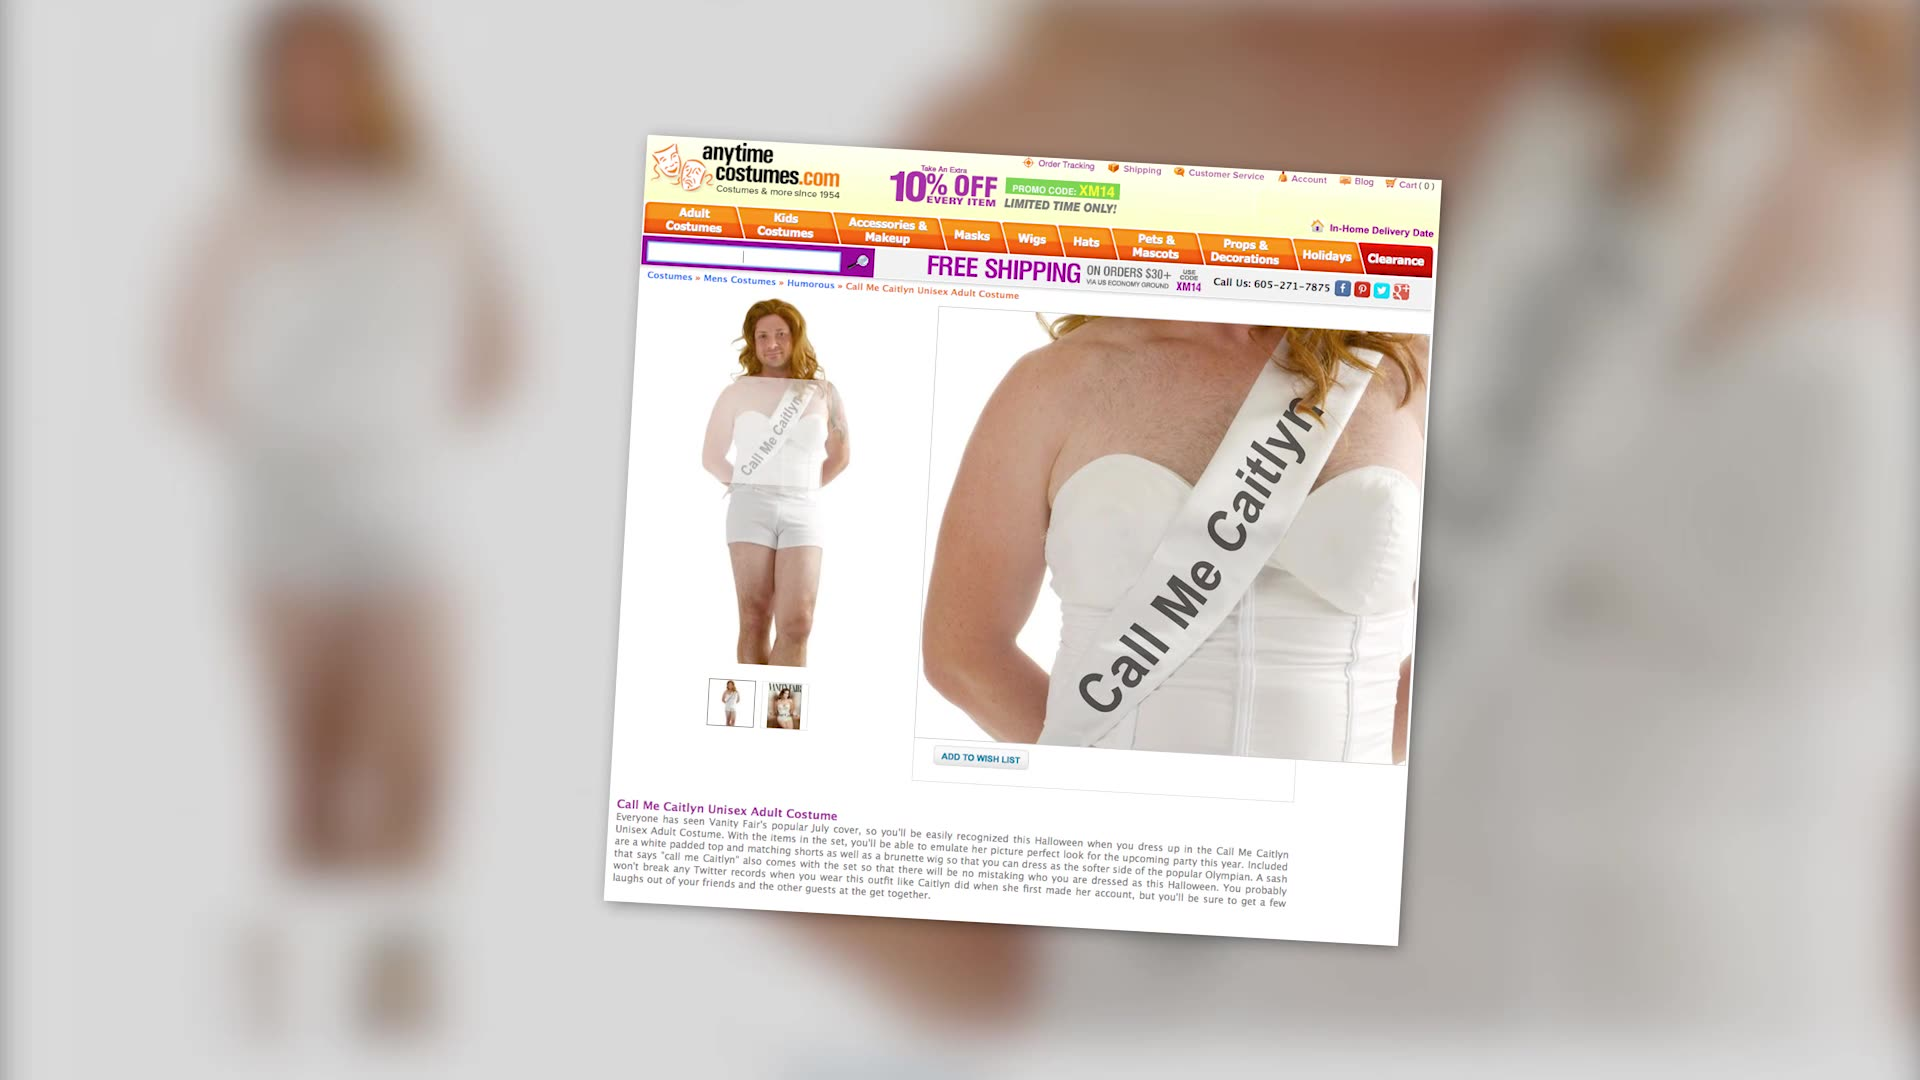 Caitlyn Jenner Halloween Costume Receives Major Backlash